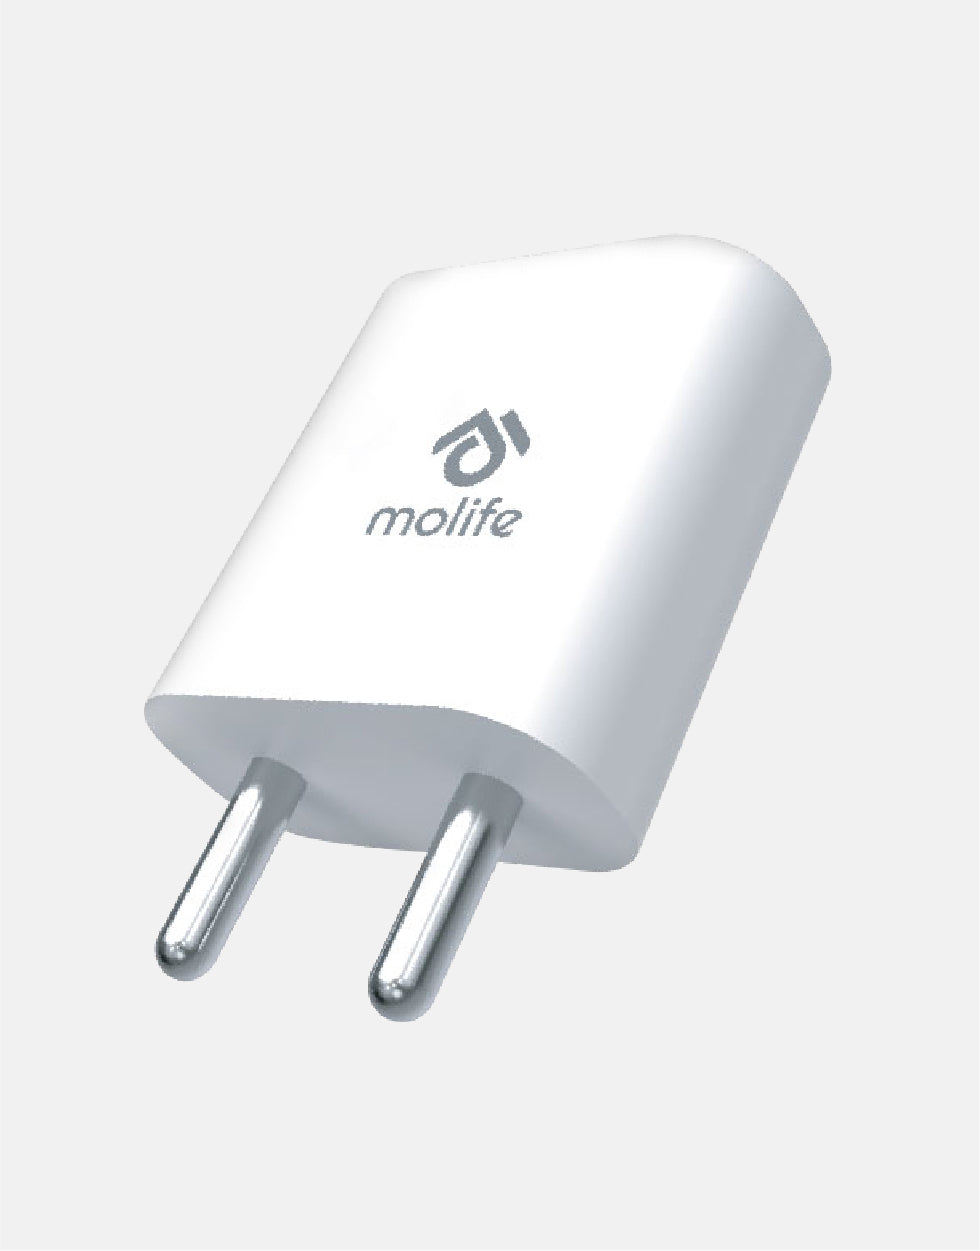 Molife Beacon S1  Fast Charger Compatible for Android Smartphones, Other Devices, Power Adaptor, Wall Charger, Sleek, Compact